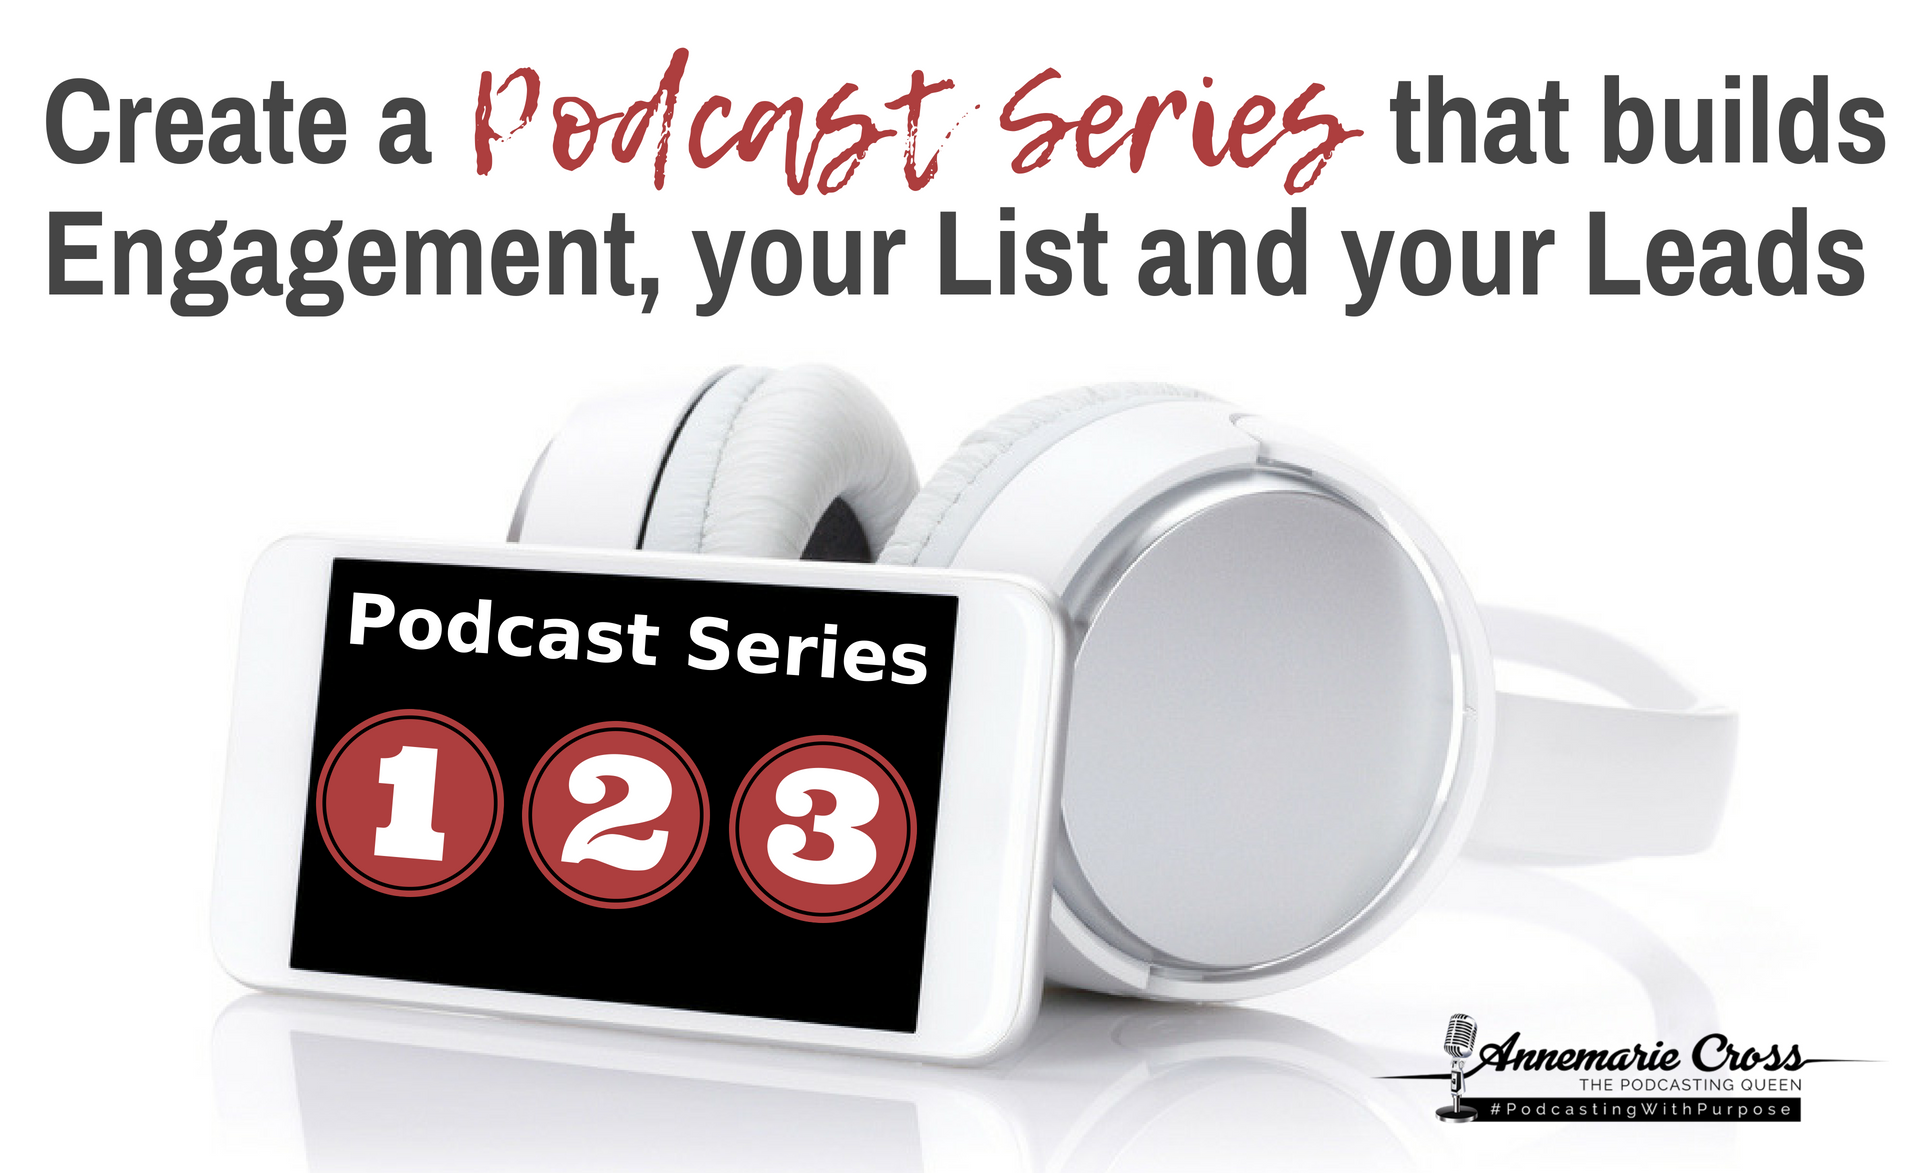 Create a Podcast Series to build engagement, your list, and your leads